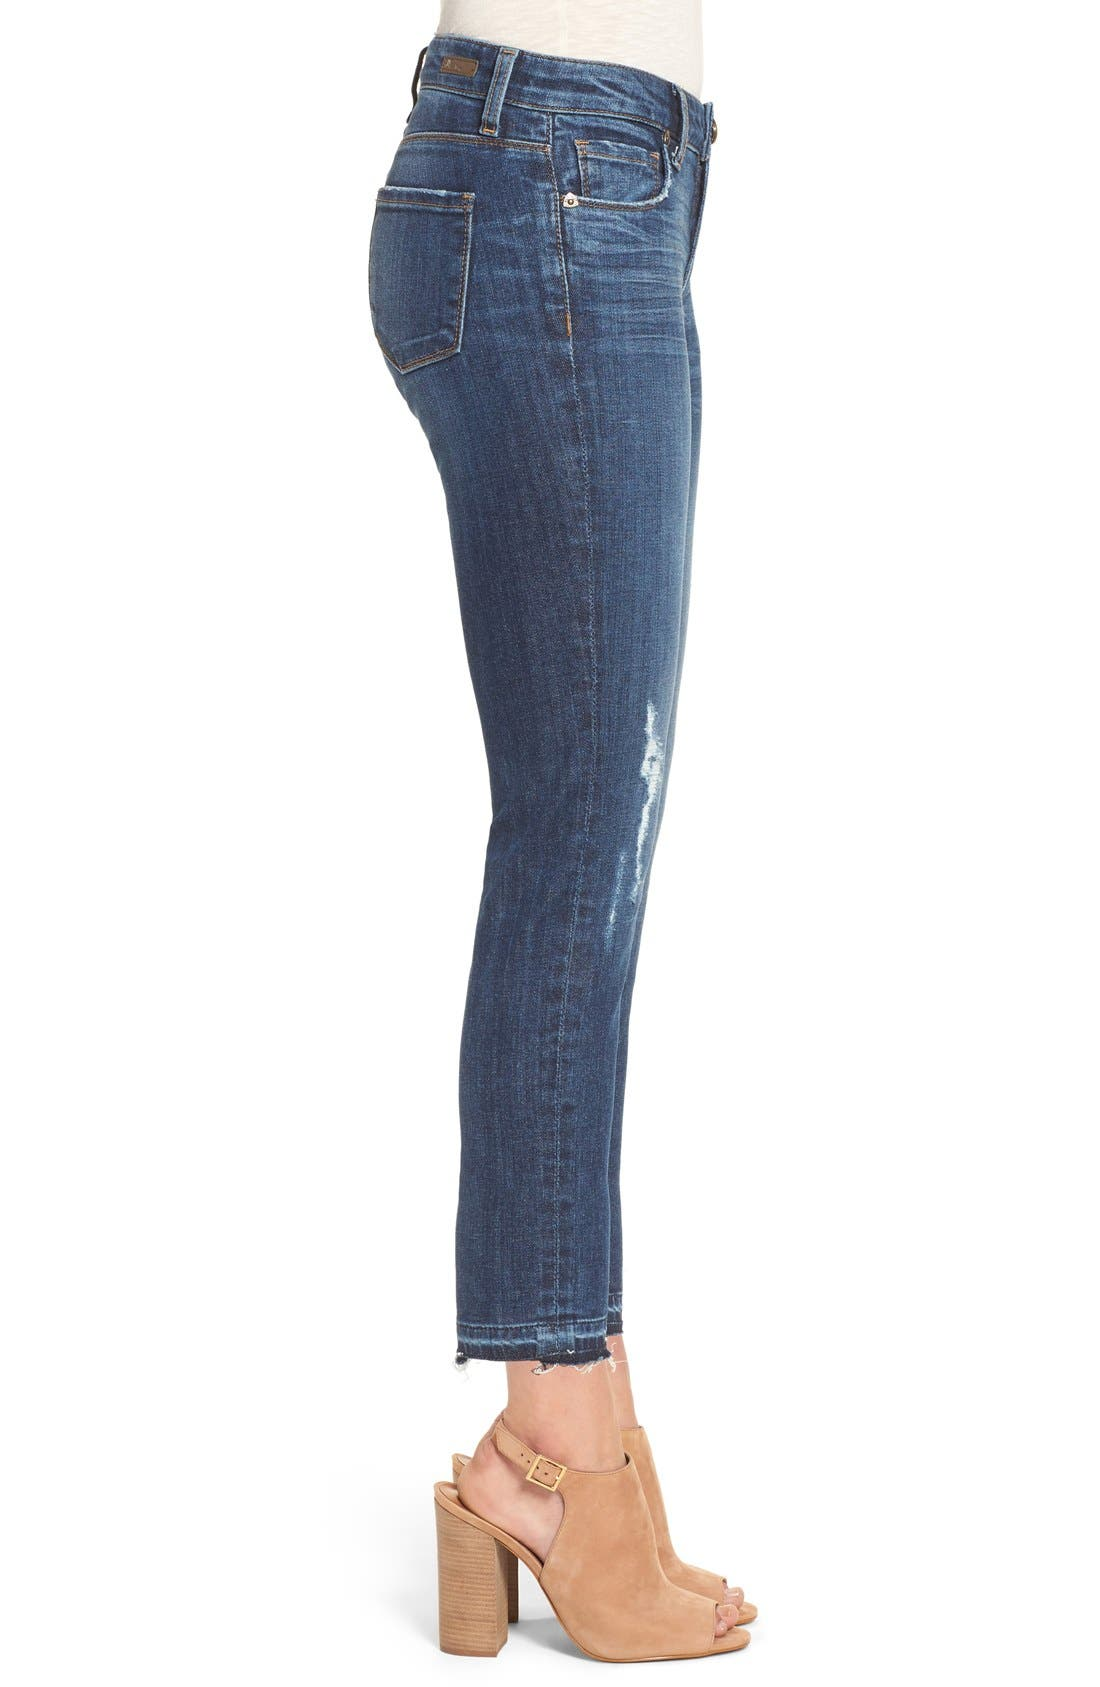 Alternate Image 4  - KUT from the Kloth 'Reese' Distressed Stretch Straight Leg Ankle Jeans (Capability) (Regular & Petite)